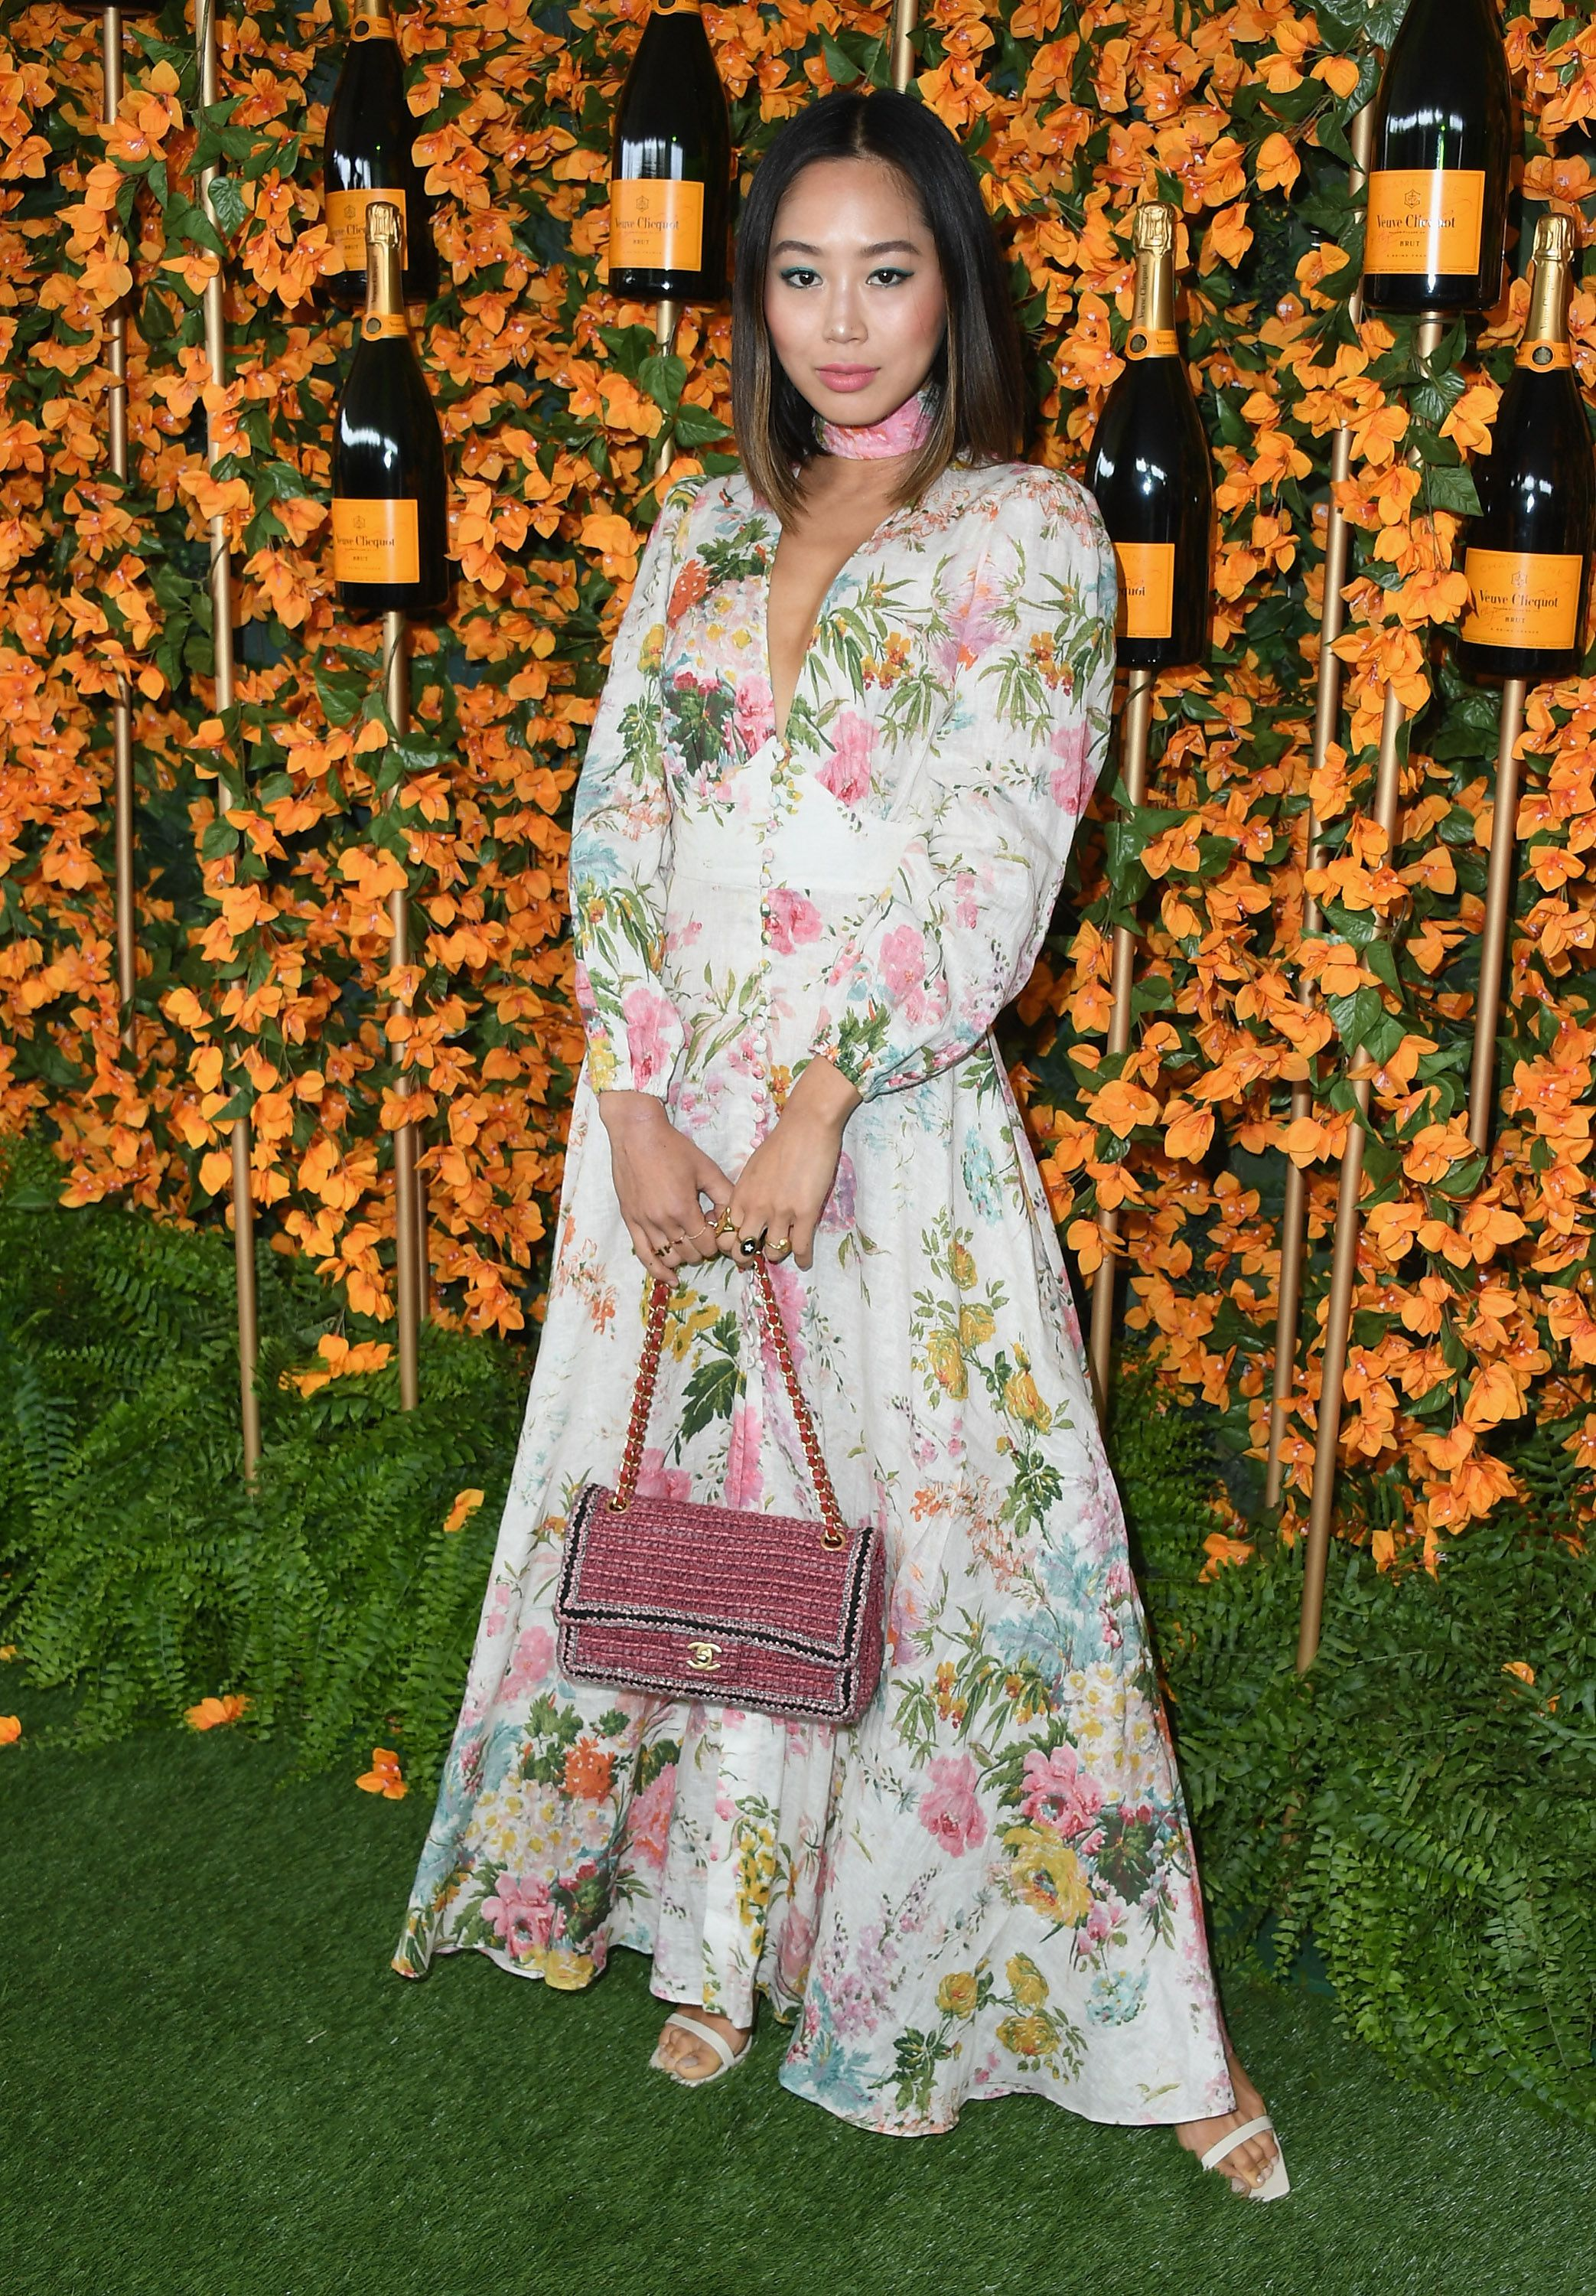 aimee-song-attends-the-9th-annual-veuve-clicquot-polo-news-photo-1046760994-1538937364.jpg